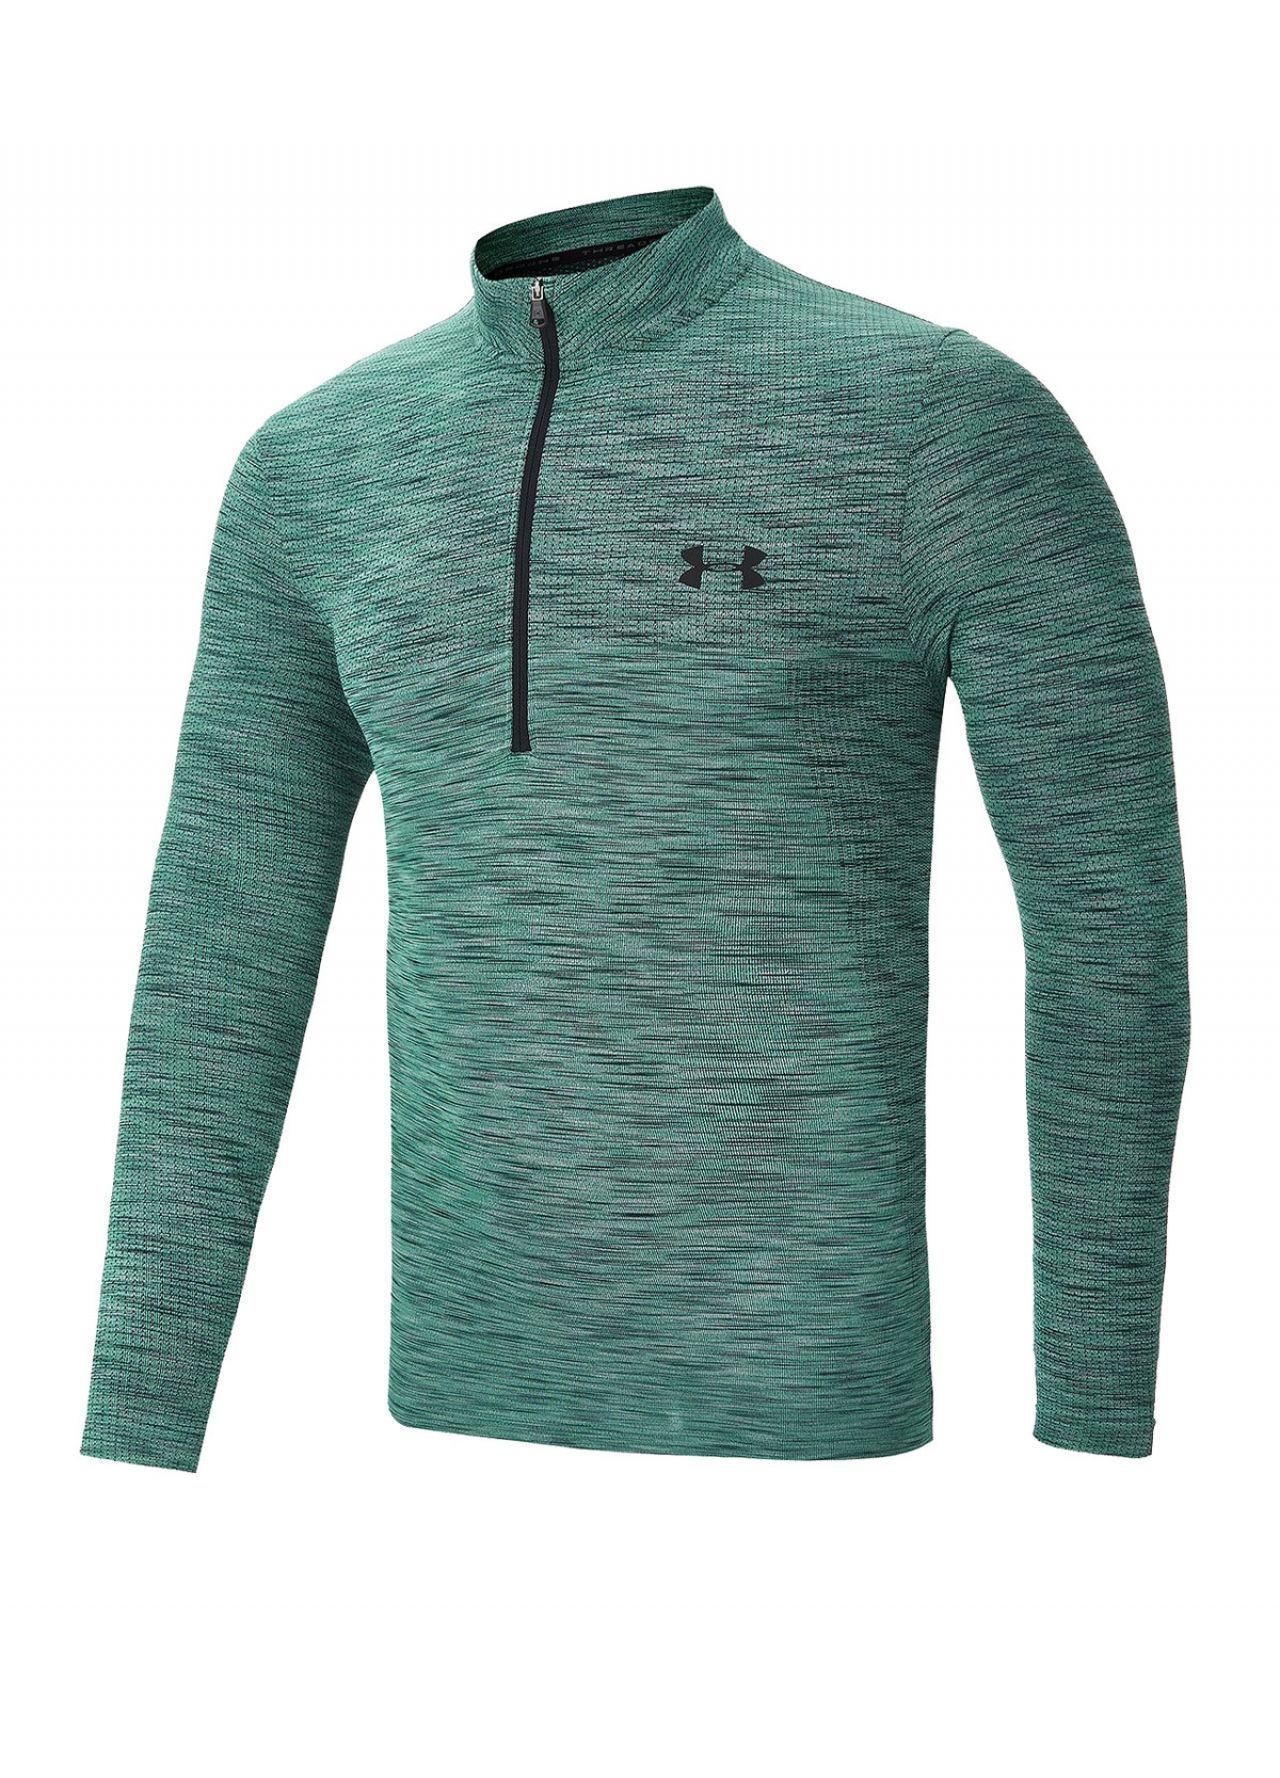 Puede ser ignorado Extracto Mamut  Golf Clothing - Midlayers - Under Armour Heat Gear Seamless 1/2 Zip  Midlayer (E239) from County Golf